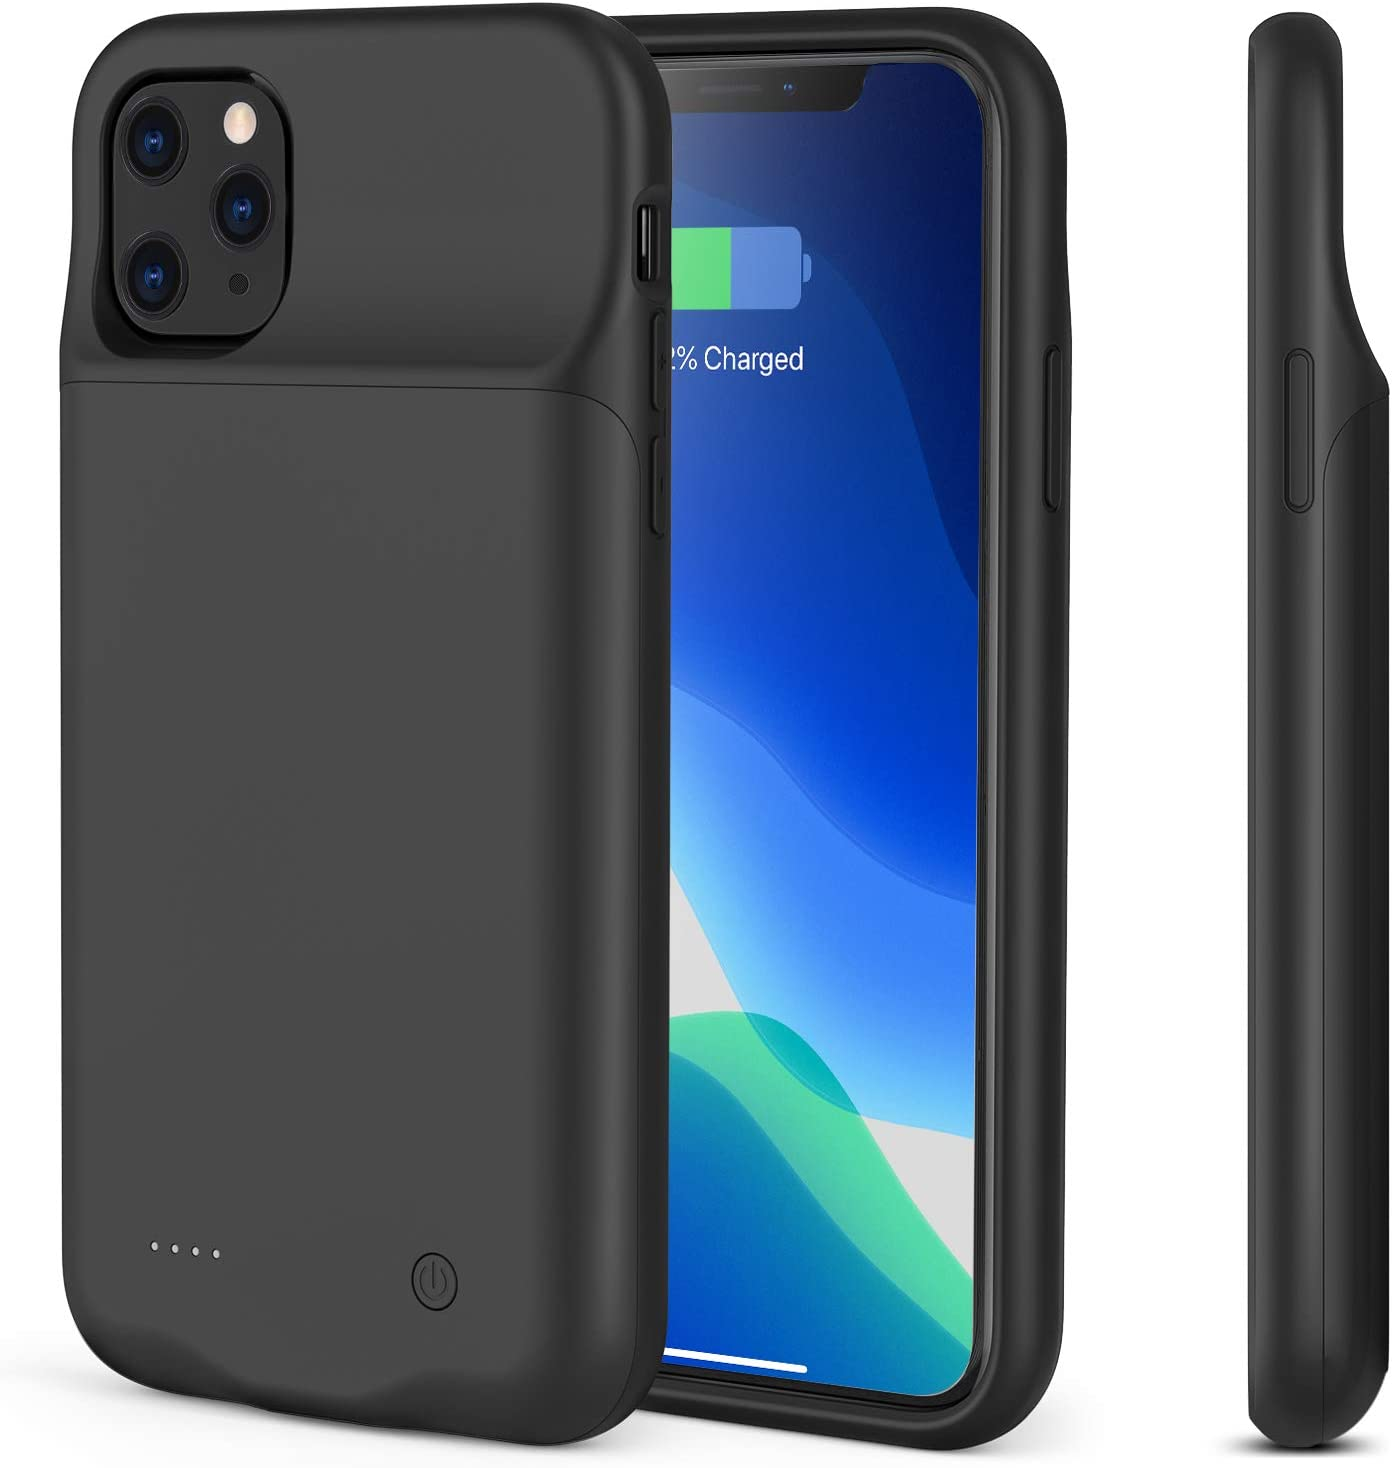 Free Amazon Promo Code 2020 for Battery Case for iPhone